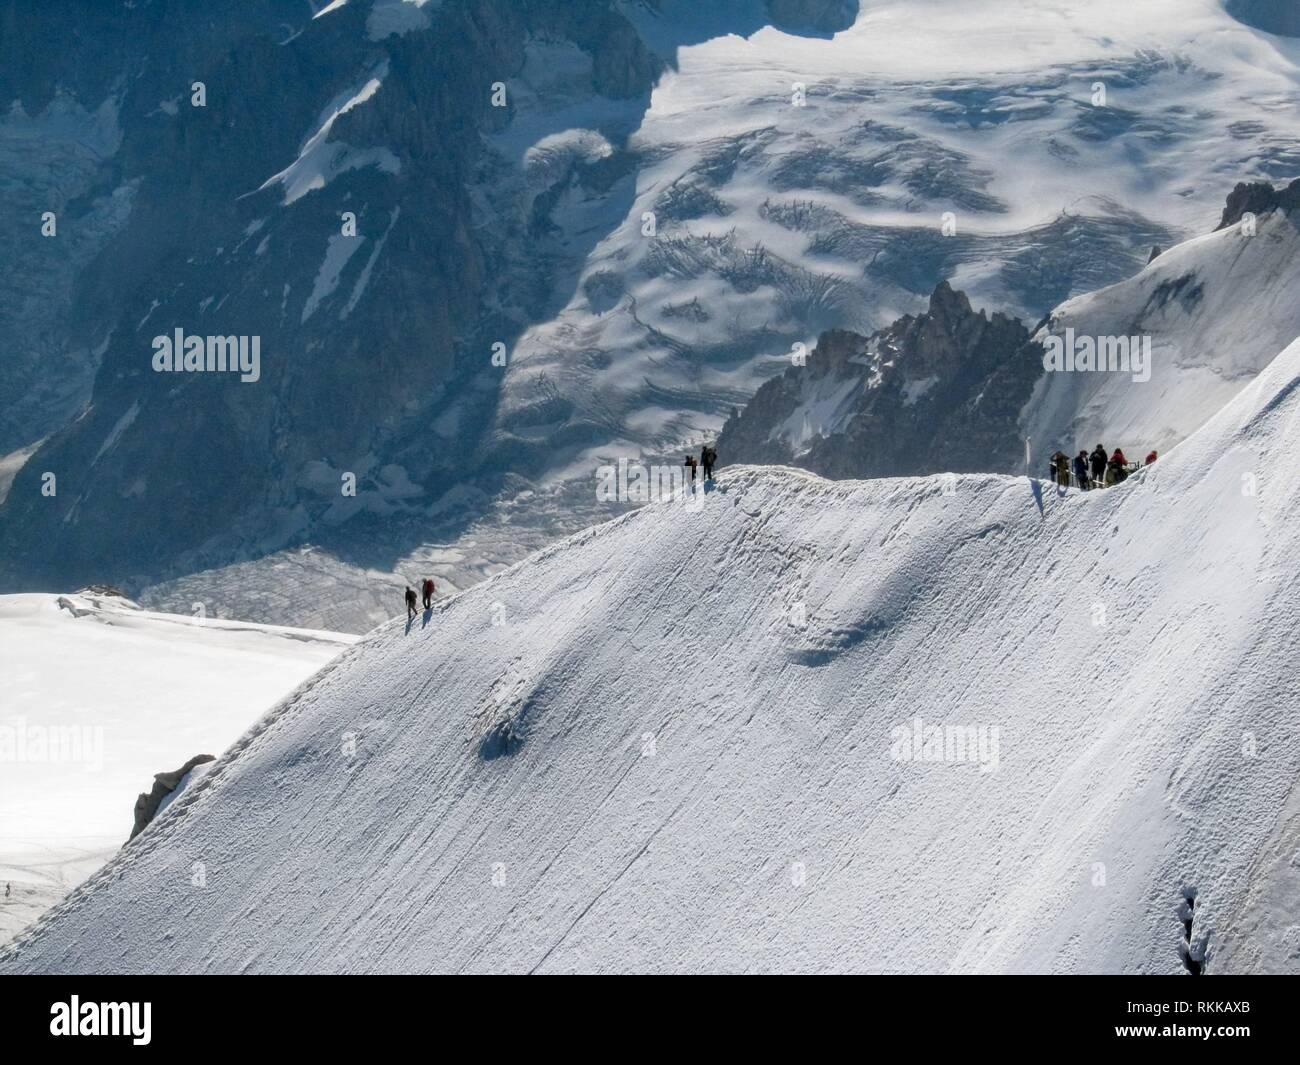 Trekkers on Aiguille Du Midi, in the french alps. - Stock Image